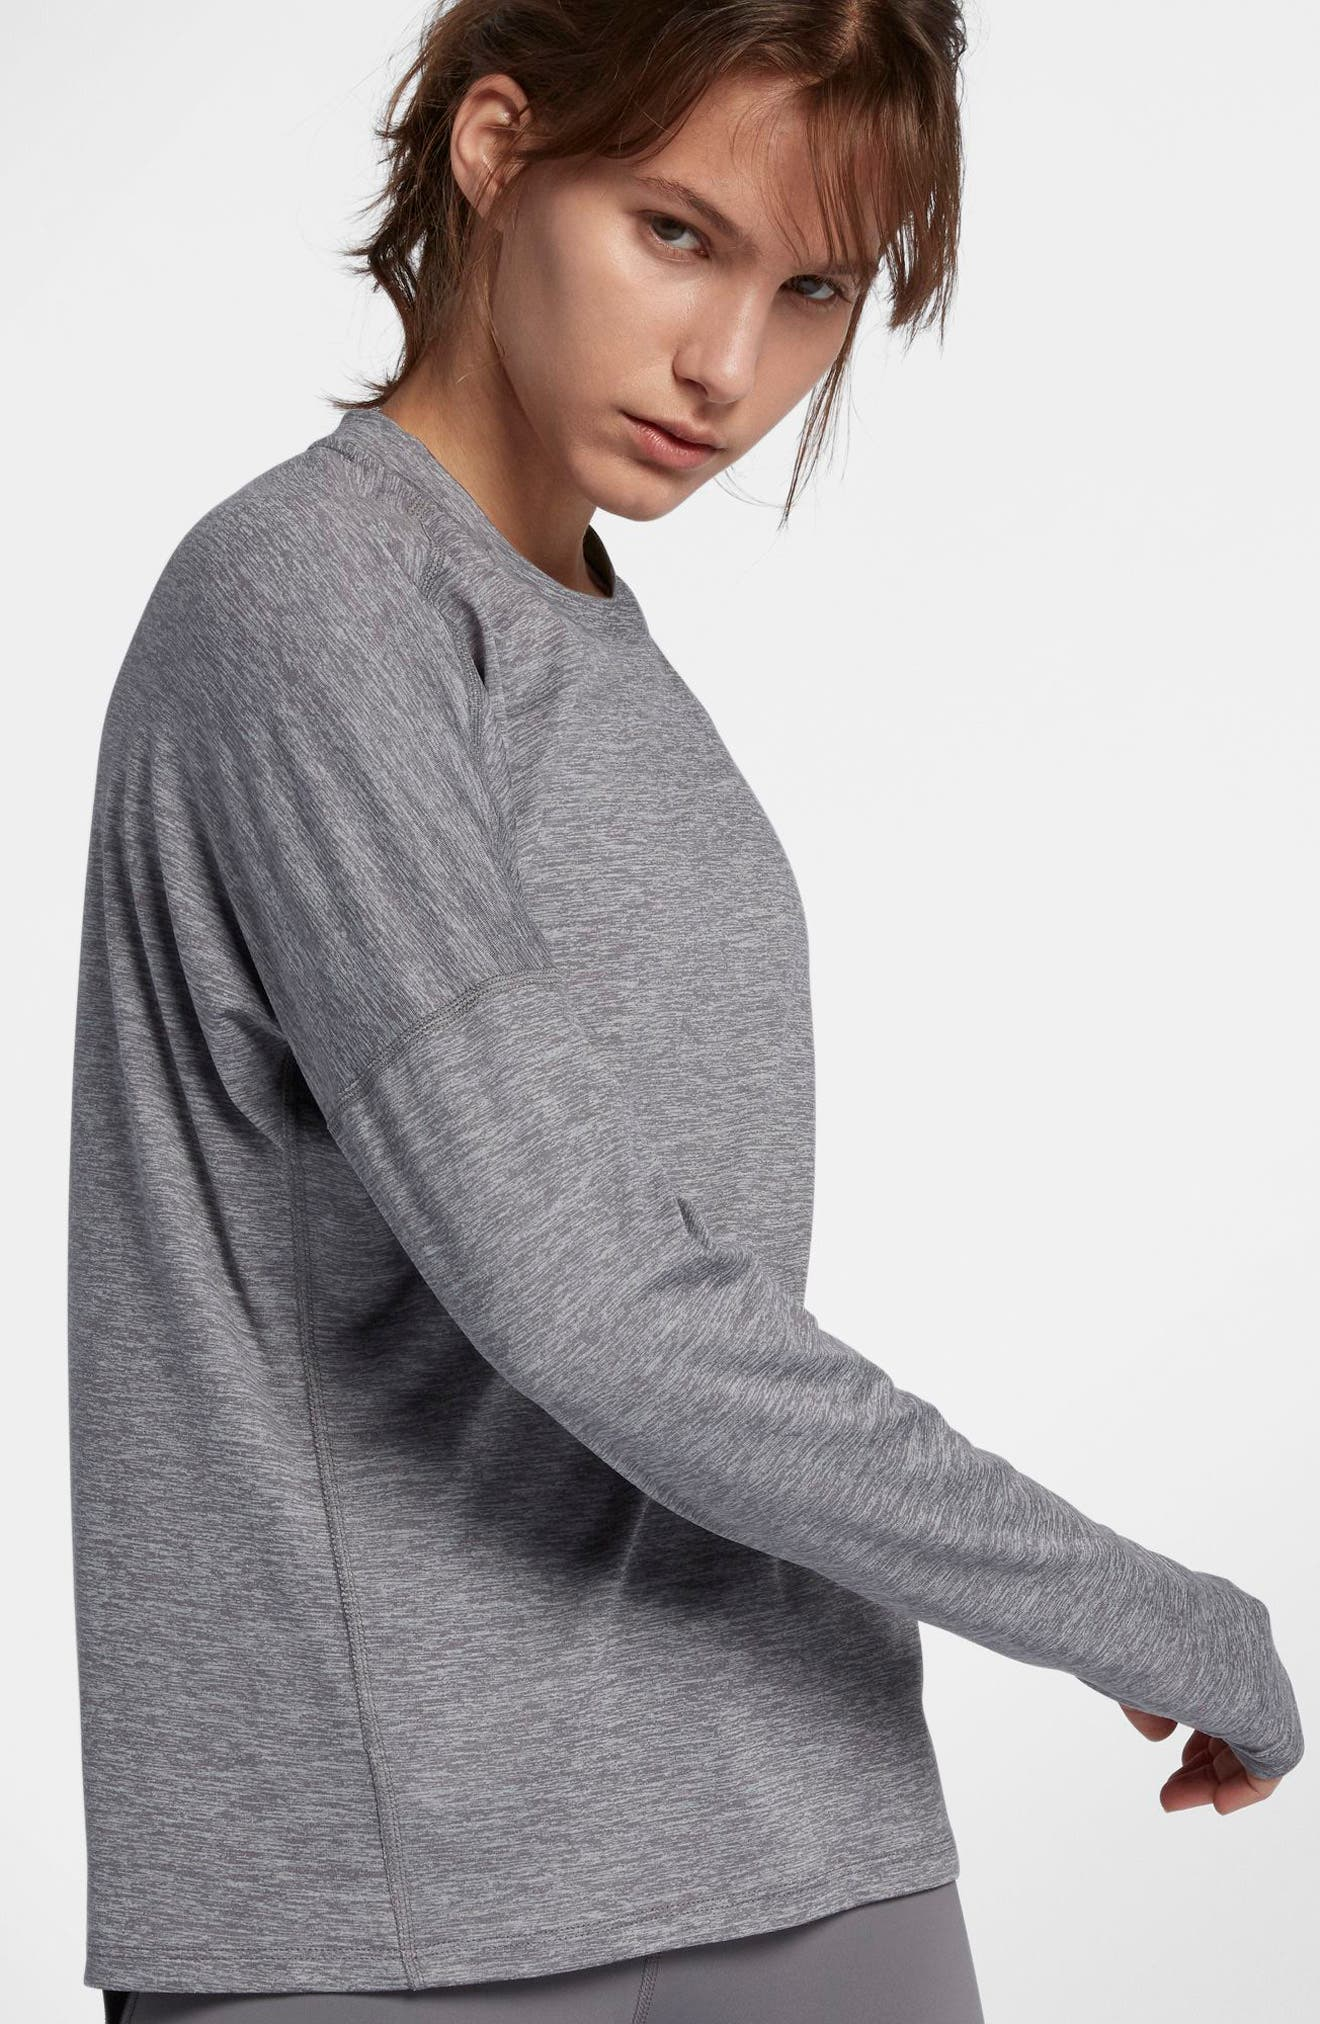 NIKE,                             Dry Element Long Sleeve Top,                             Alternate thumbnail 8, color,                             036